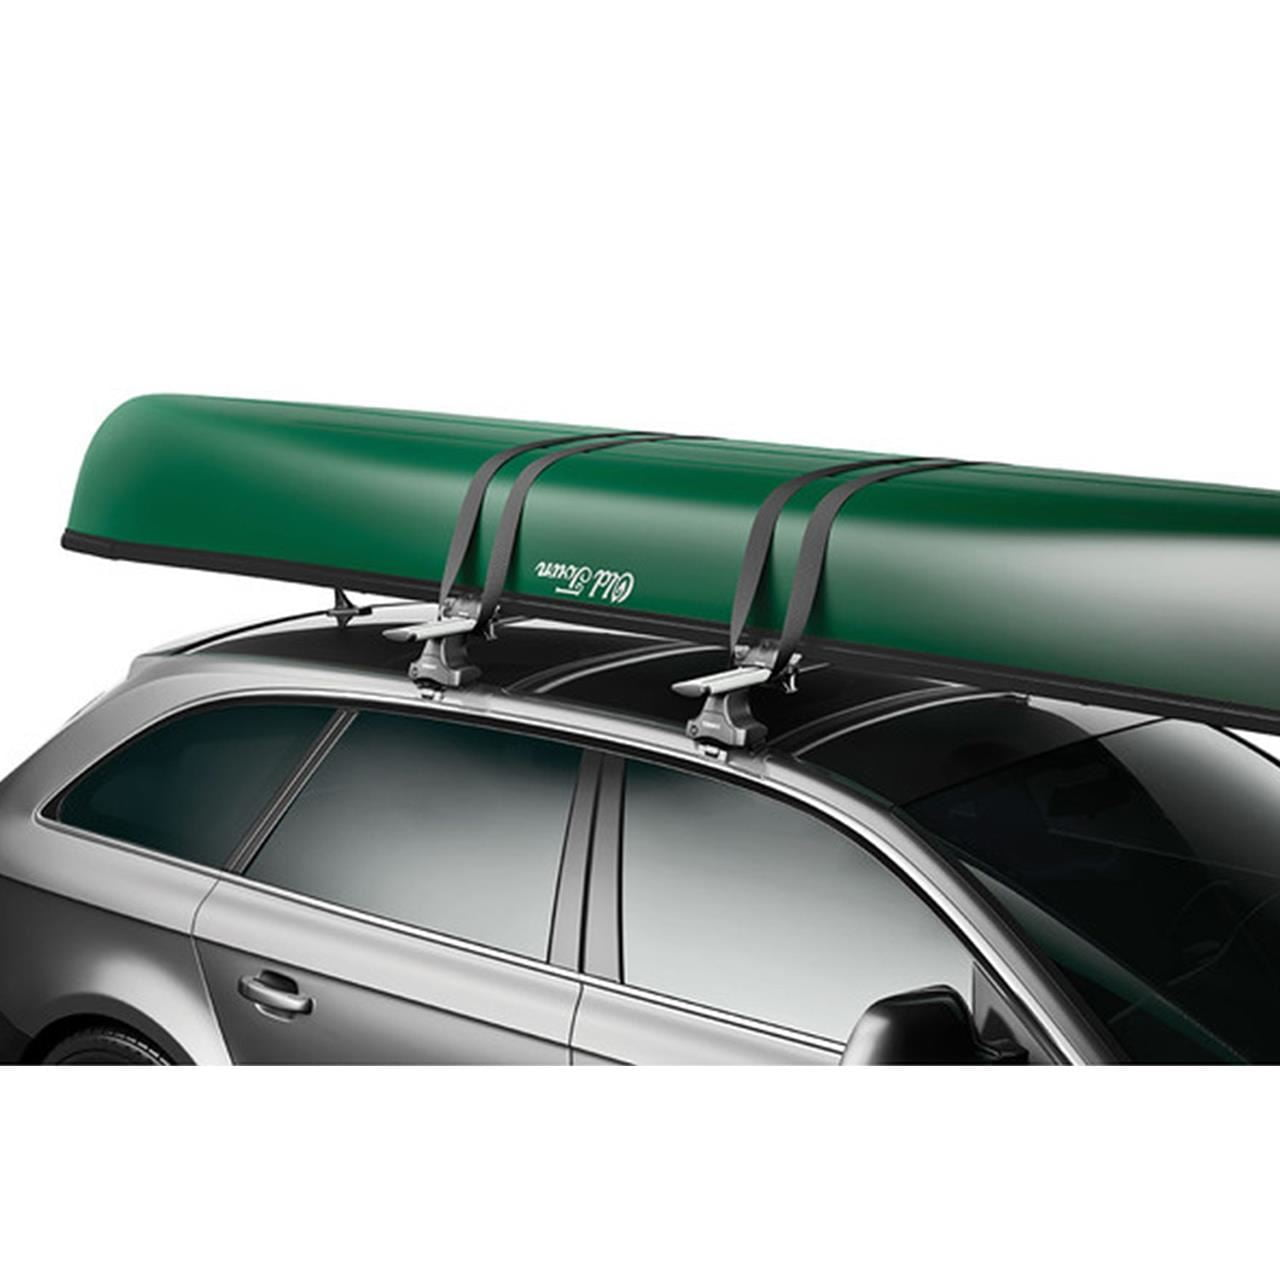 Suport transport canoe Thule Portage 1